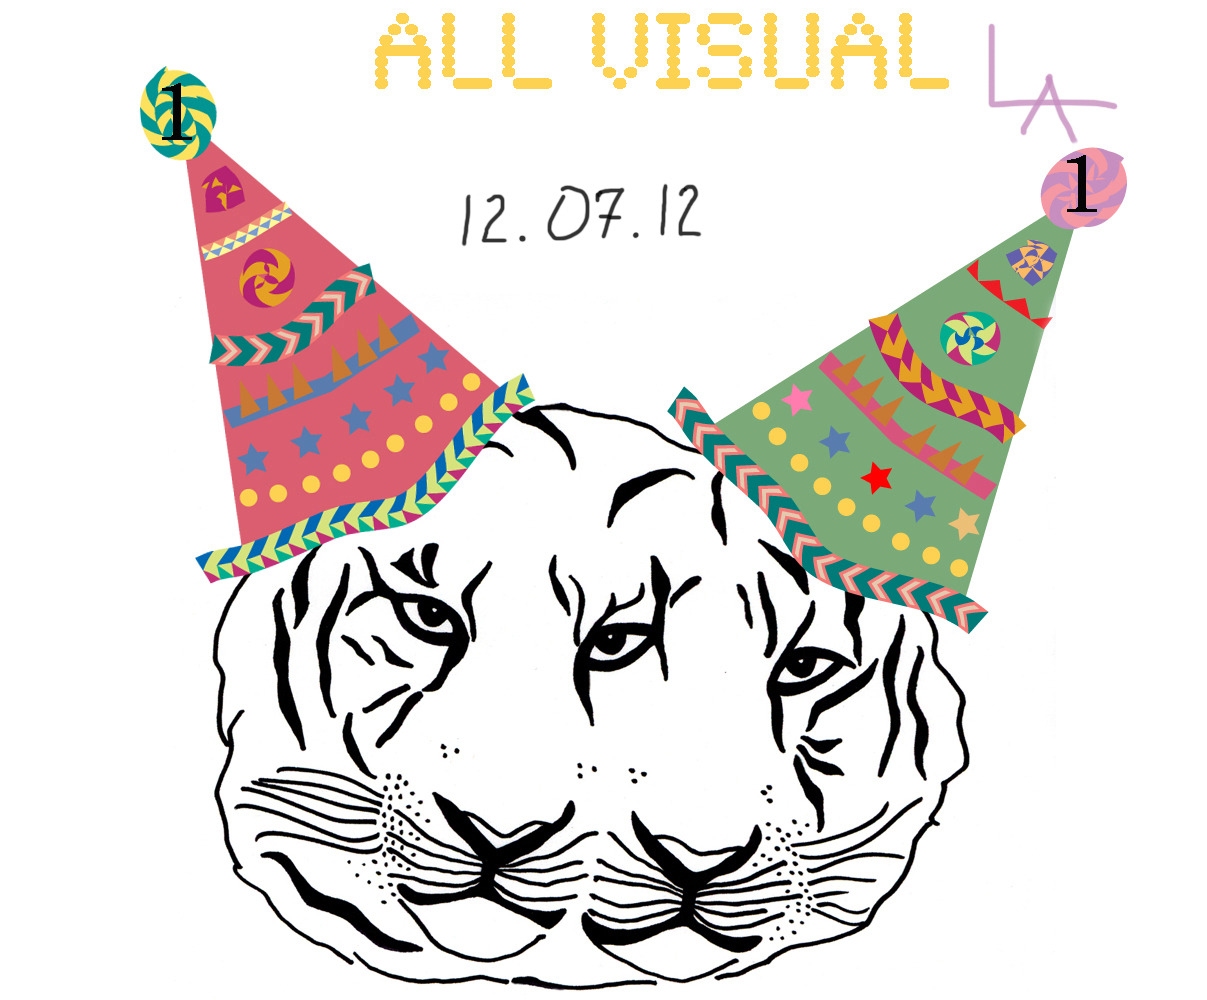 allvisual:  We are celebrating our 1 year Anniversary this Friday - December 7th, 2012!This slideshow event is especially exciting for us. Besides the usual awesome visuals and cash bar, there will be live music, sweet DJ sets, and a very special slideshow presentation from Henry Diltz!Slideshow contributors for this month:A. Dola Baroni, Alexandra Brown, Ana Cristina Coto, Caitlin Dennis, Henry Diltz, Sam Friedman, Julia Galdo, William Haswell, Mike Hernandez, Tattiya Kliengklom, Jimmy Marble, jon walter mocey-hanton, Adam Moskowitz, Michelle Alexis Newman, Lauren Randolph, Collins Schude, Ryan Schude, Ginevra Shay, Cody Smith, Graham Walzer, Lauren Ward, Billie WheelerWe hope you can be with us for this special event. Check out our Facebook antics here for more details!